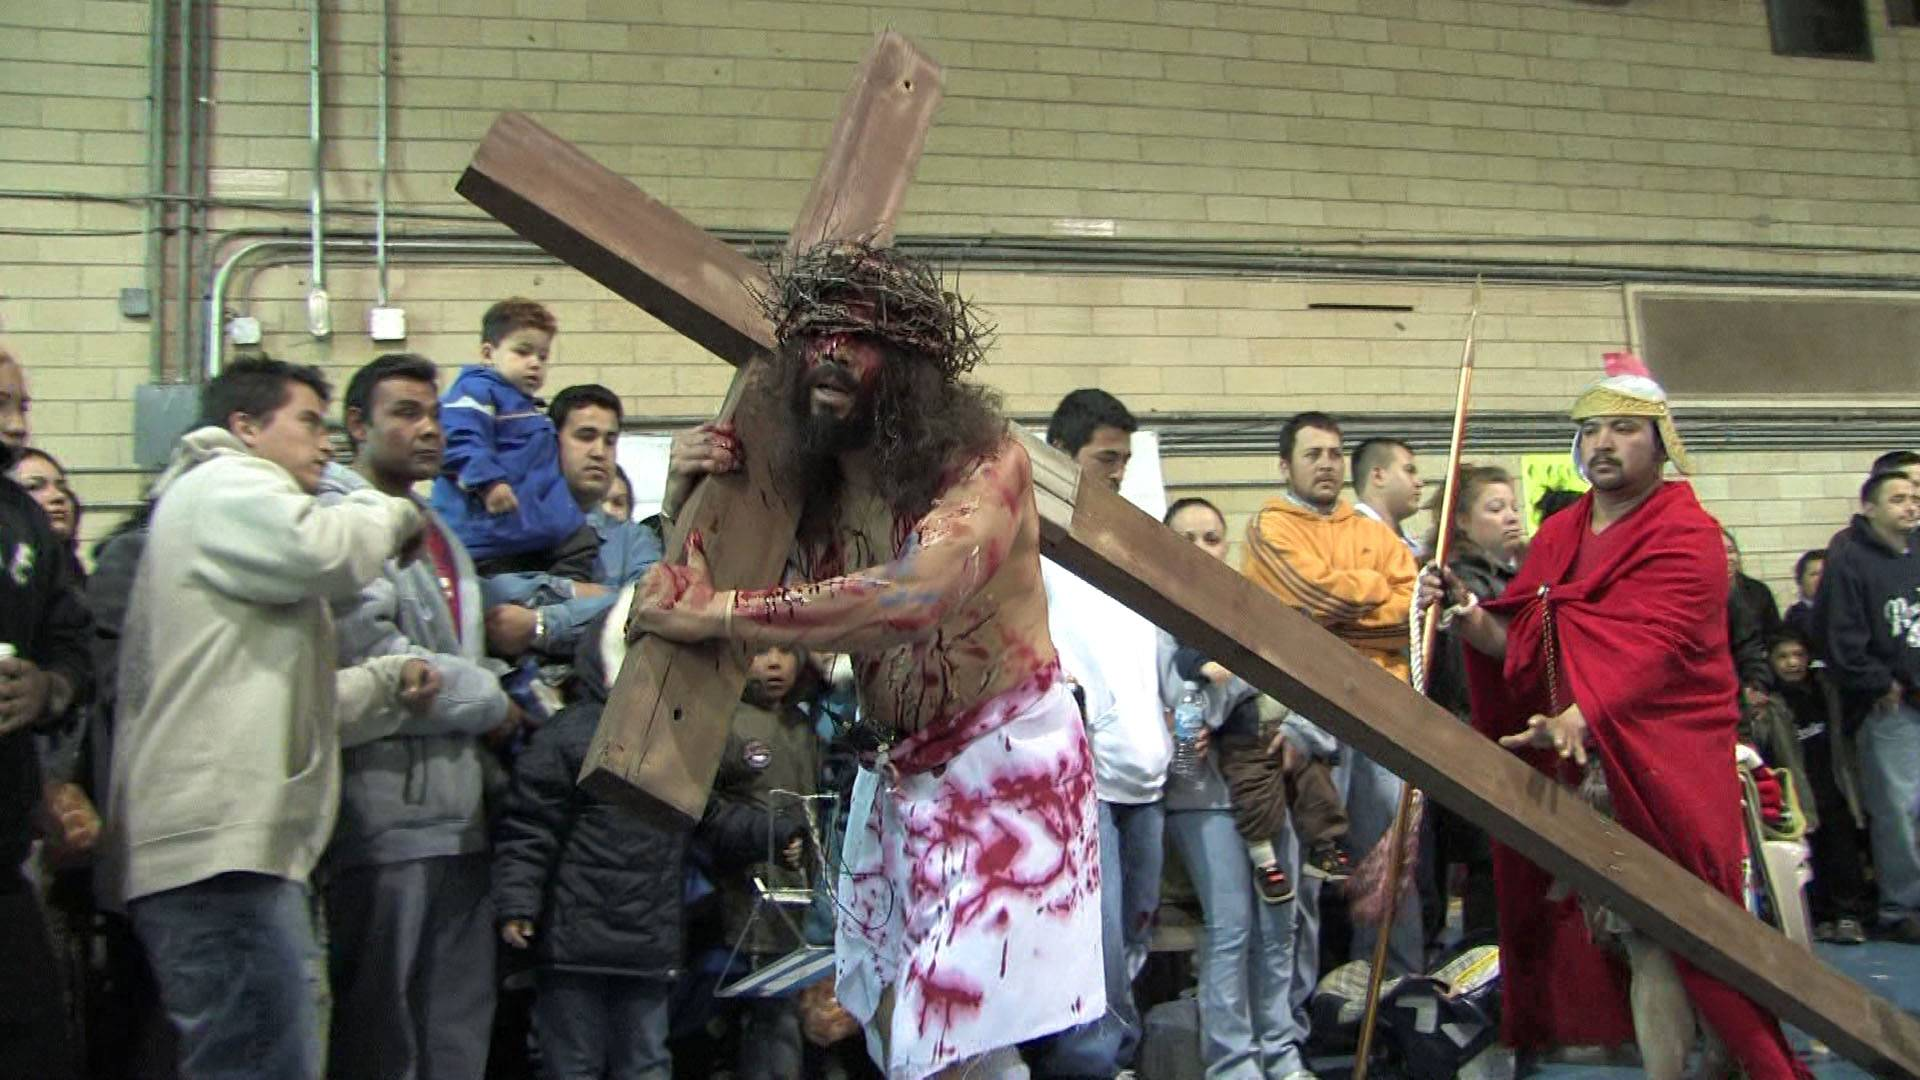 Romualdo Alvarado doesn't shrink from the burdens of accurately portraying Jesus as he carries the cross during a performance.